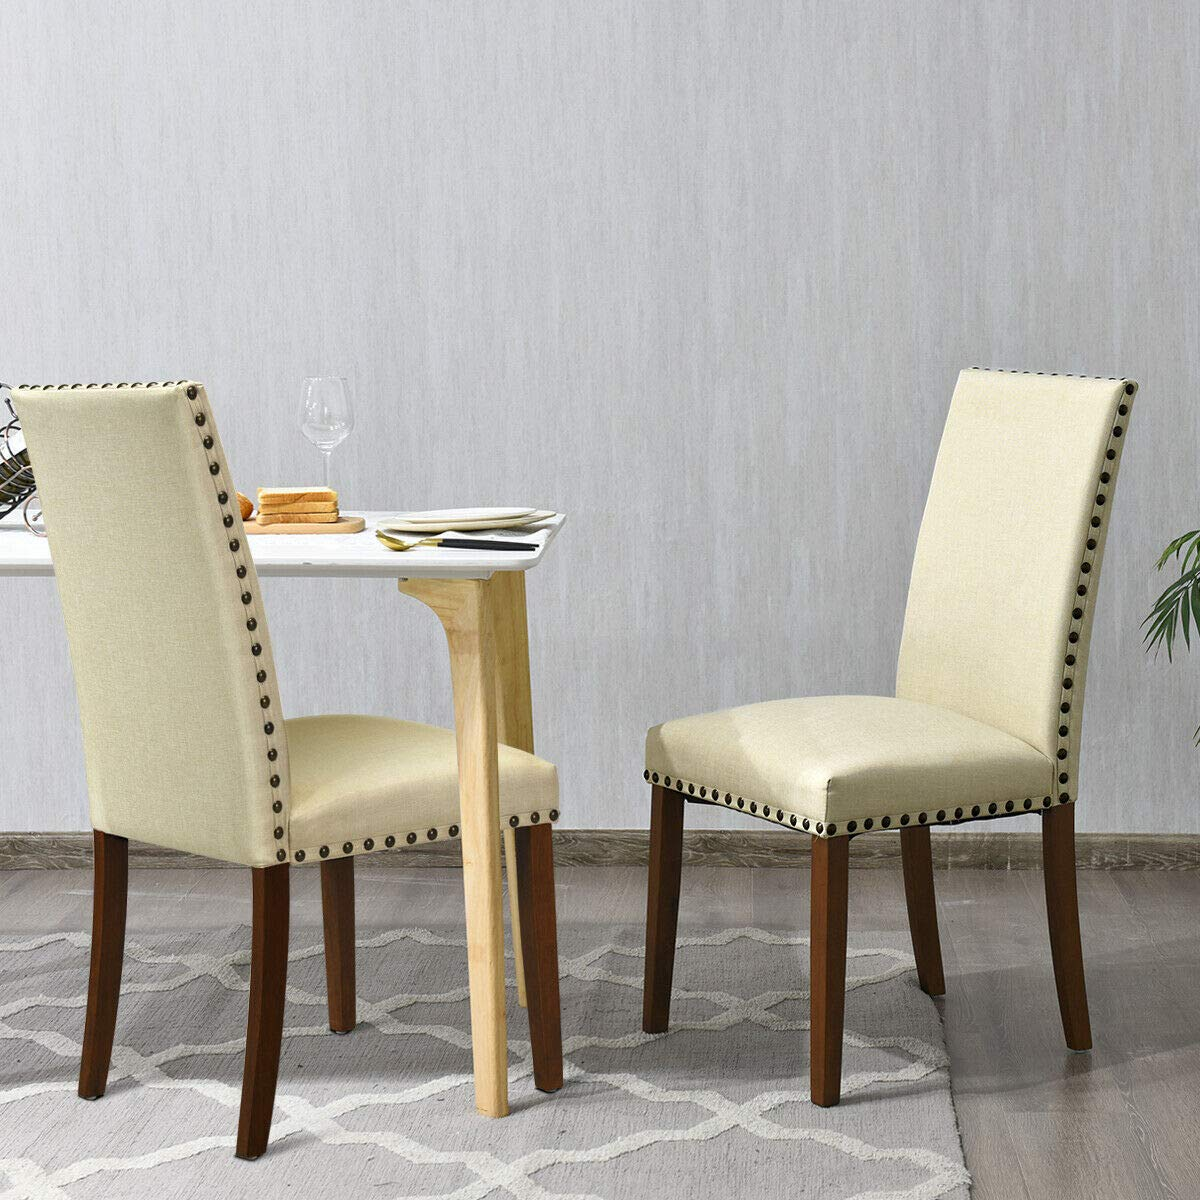 Giantex Set of 2Fabric Dining Chairs w Nailed Trim, Upholstered Cushion Solid Rubber Wooden Legs, Sponge Backrest, Classical Mid Century Style, 2 PCS Armless Side Chairs, Beige